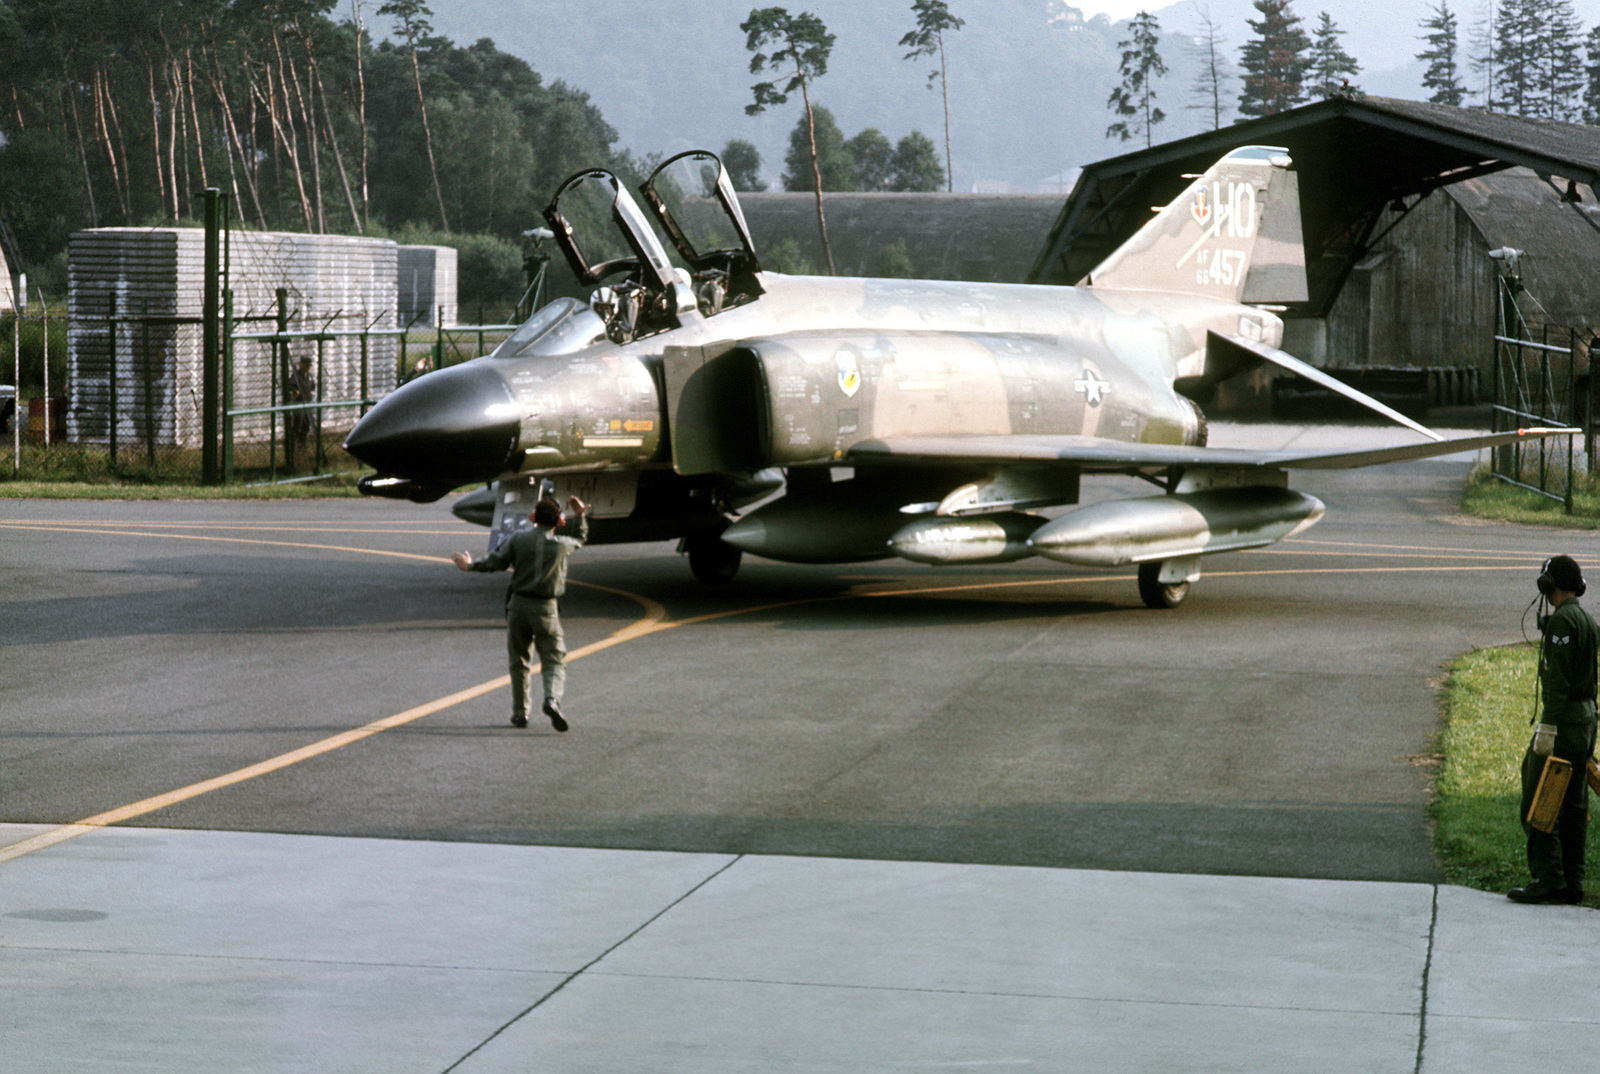 A Plane Director Guides An F 4 Phantom II Aircraft From The 8th Tactical Fighter Squadron To Parking Spot Has Just Arrived At Base